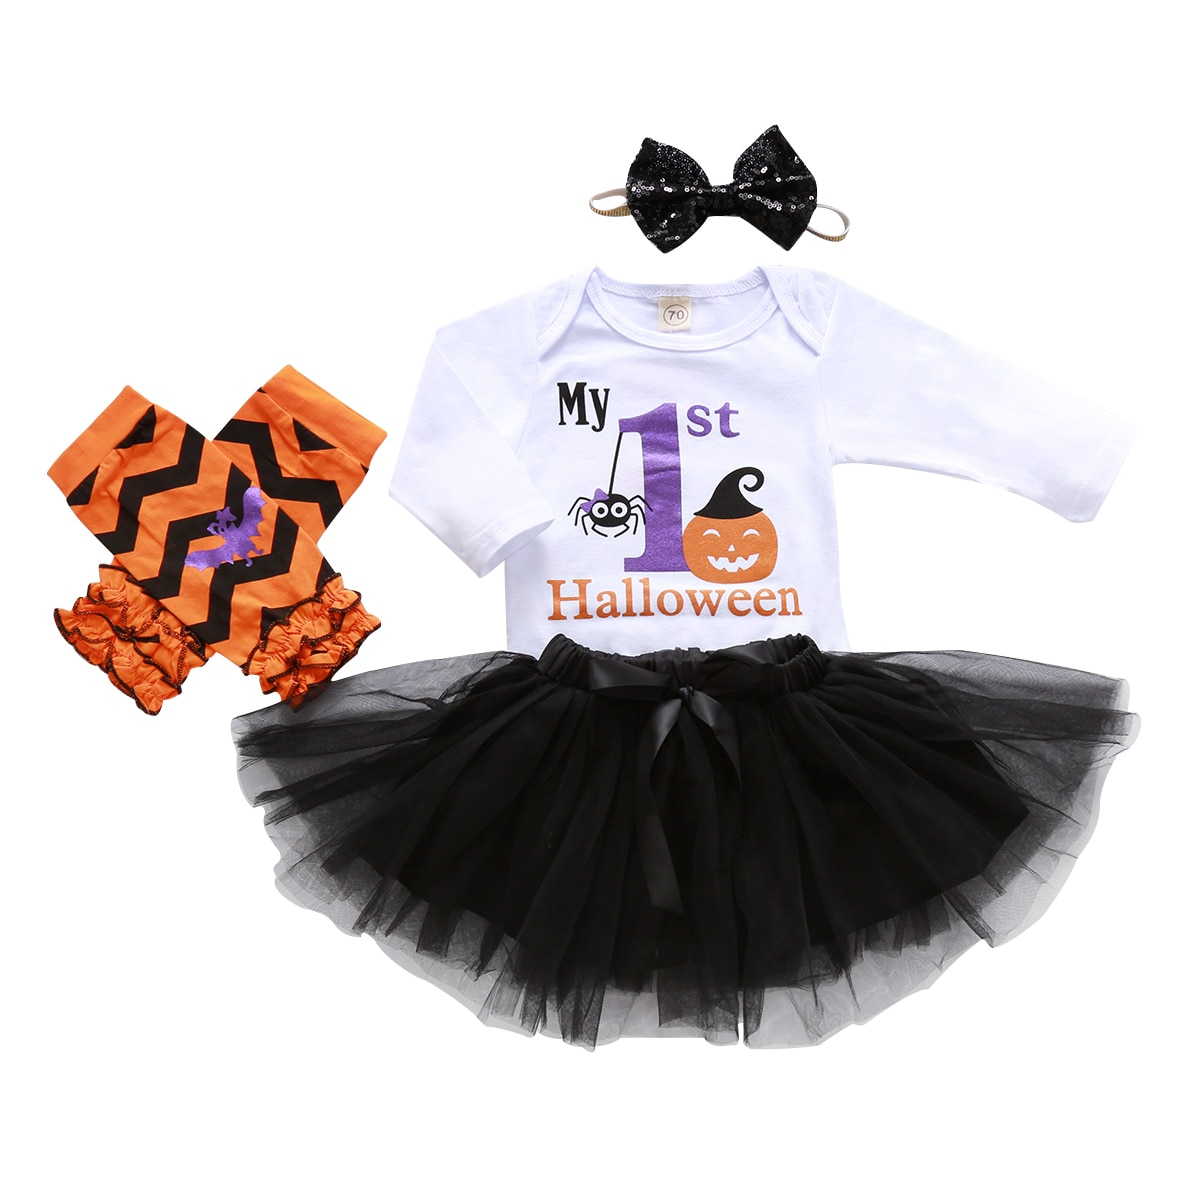 BY Baby Girl Clothes Halloween Party Clothing Pumpkin Printed Long Sleeve Top Mesh Skirt Headband Casual Newborn Suit Baby Gift